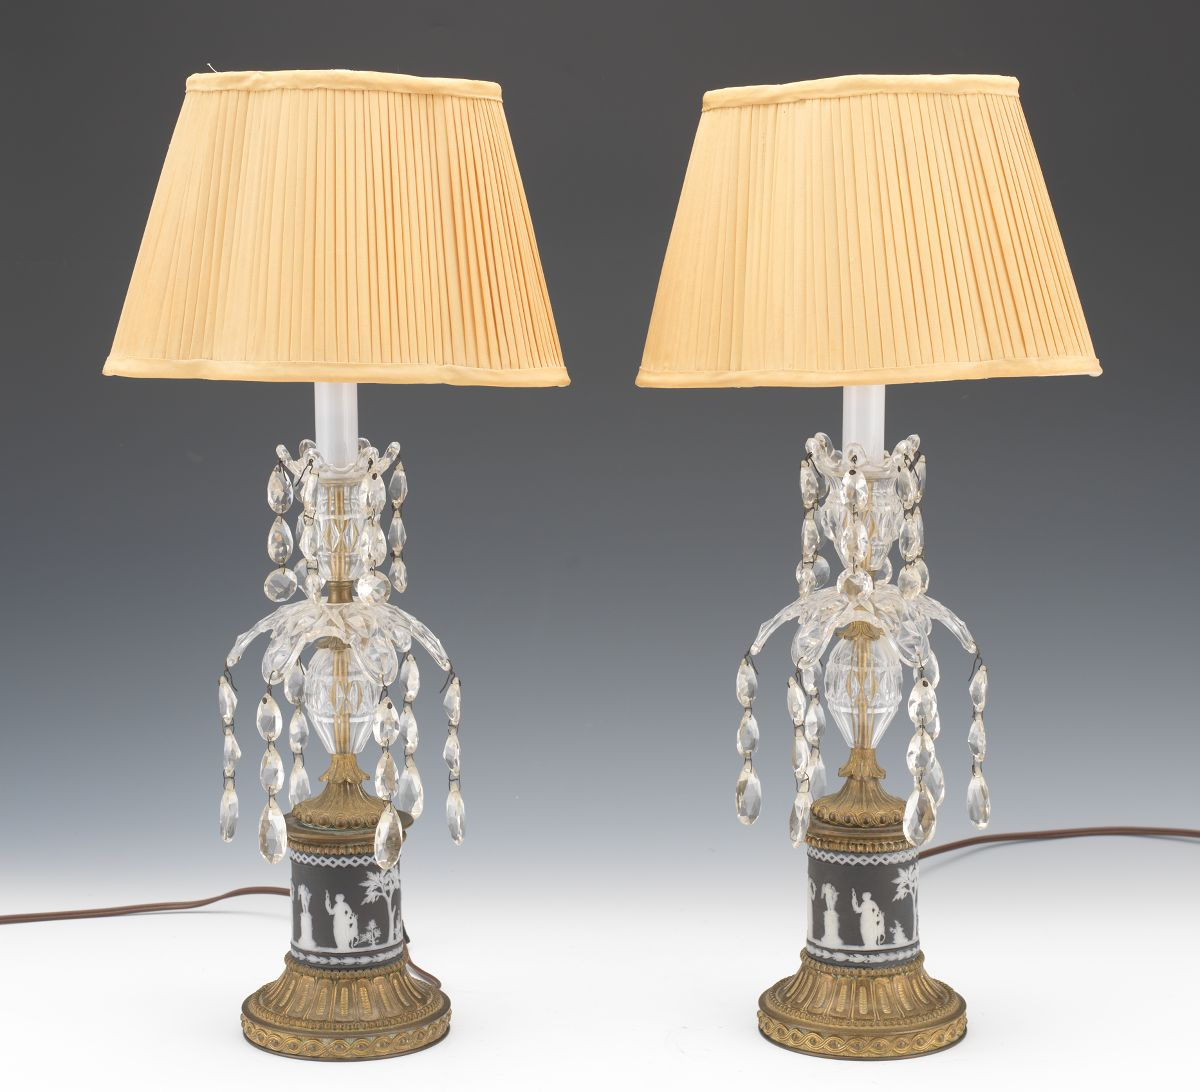 A Pair Of Gilt Patinated Brass, Wedgwood And Czech Crystal Candlestick Lamps